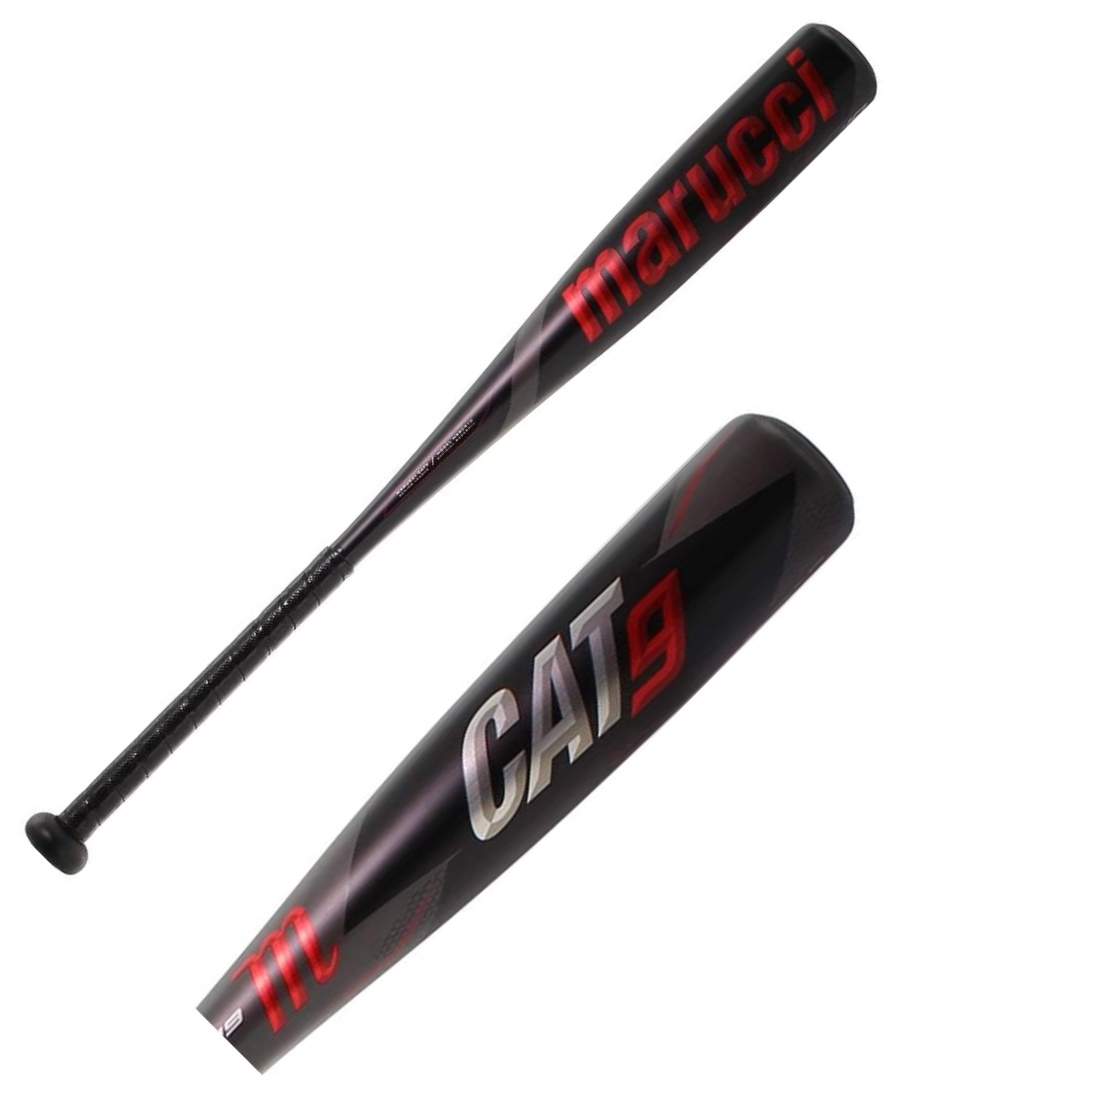 marucci-cat-9-10-usssa-baseball-bat-30-inch-20-oz MSBC910-3020   Utilizing a three-stage thermal treatment process our new AZR alloy offers